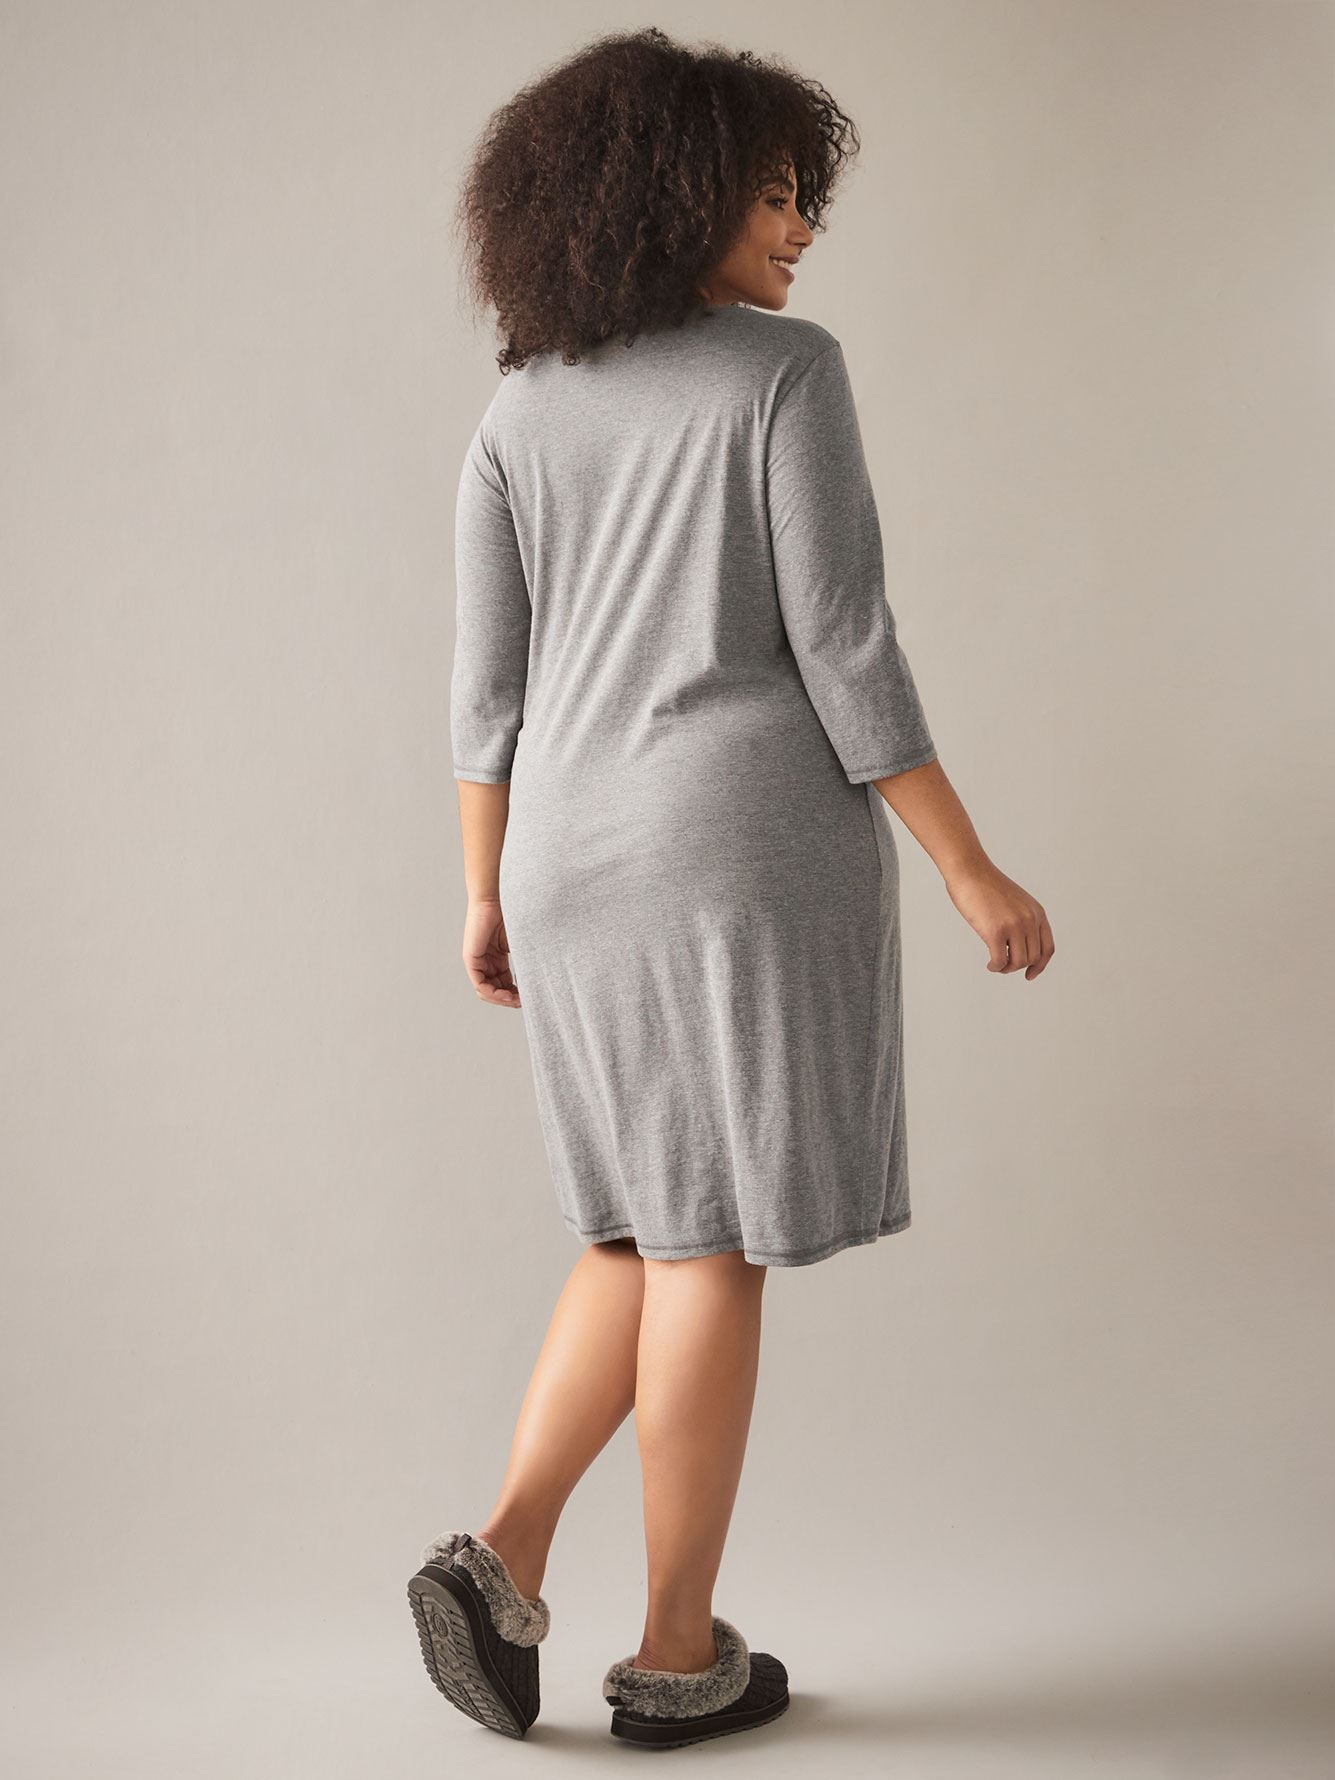 Long Heathered Sleepshirt with 3/4 Sleeves - In Every Story